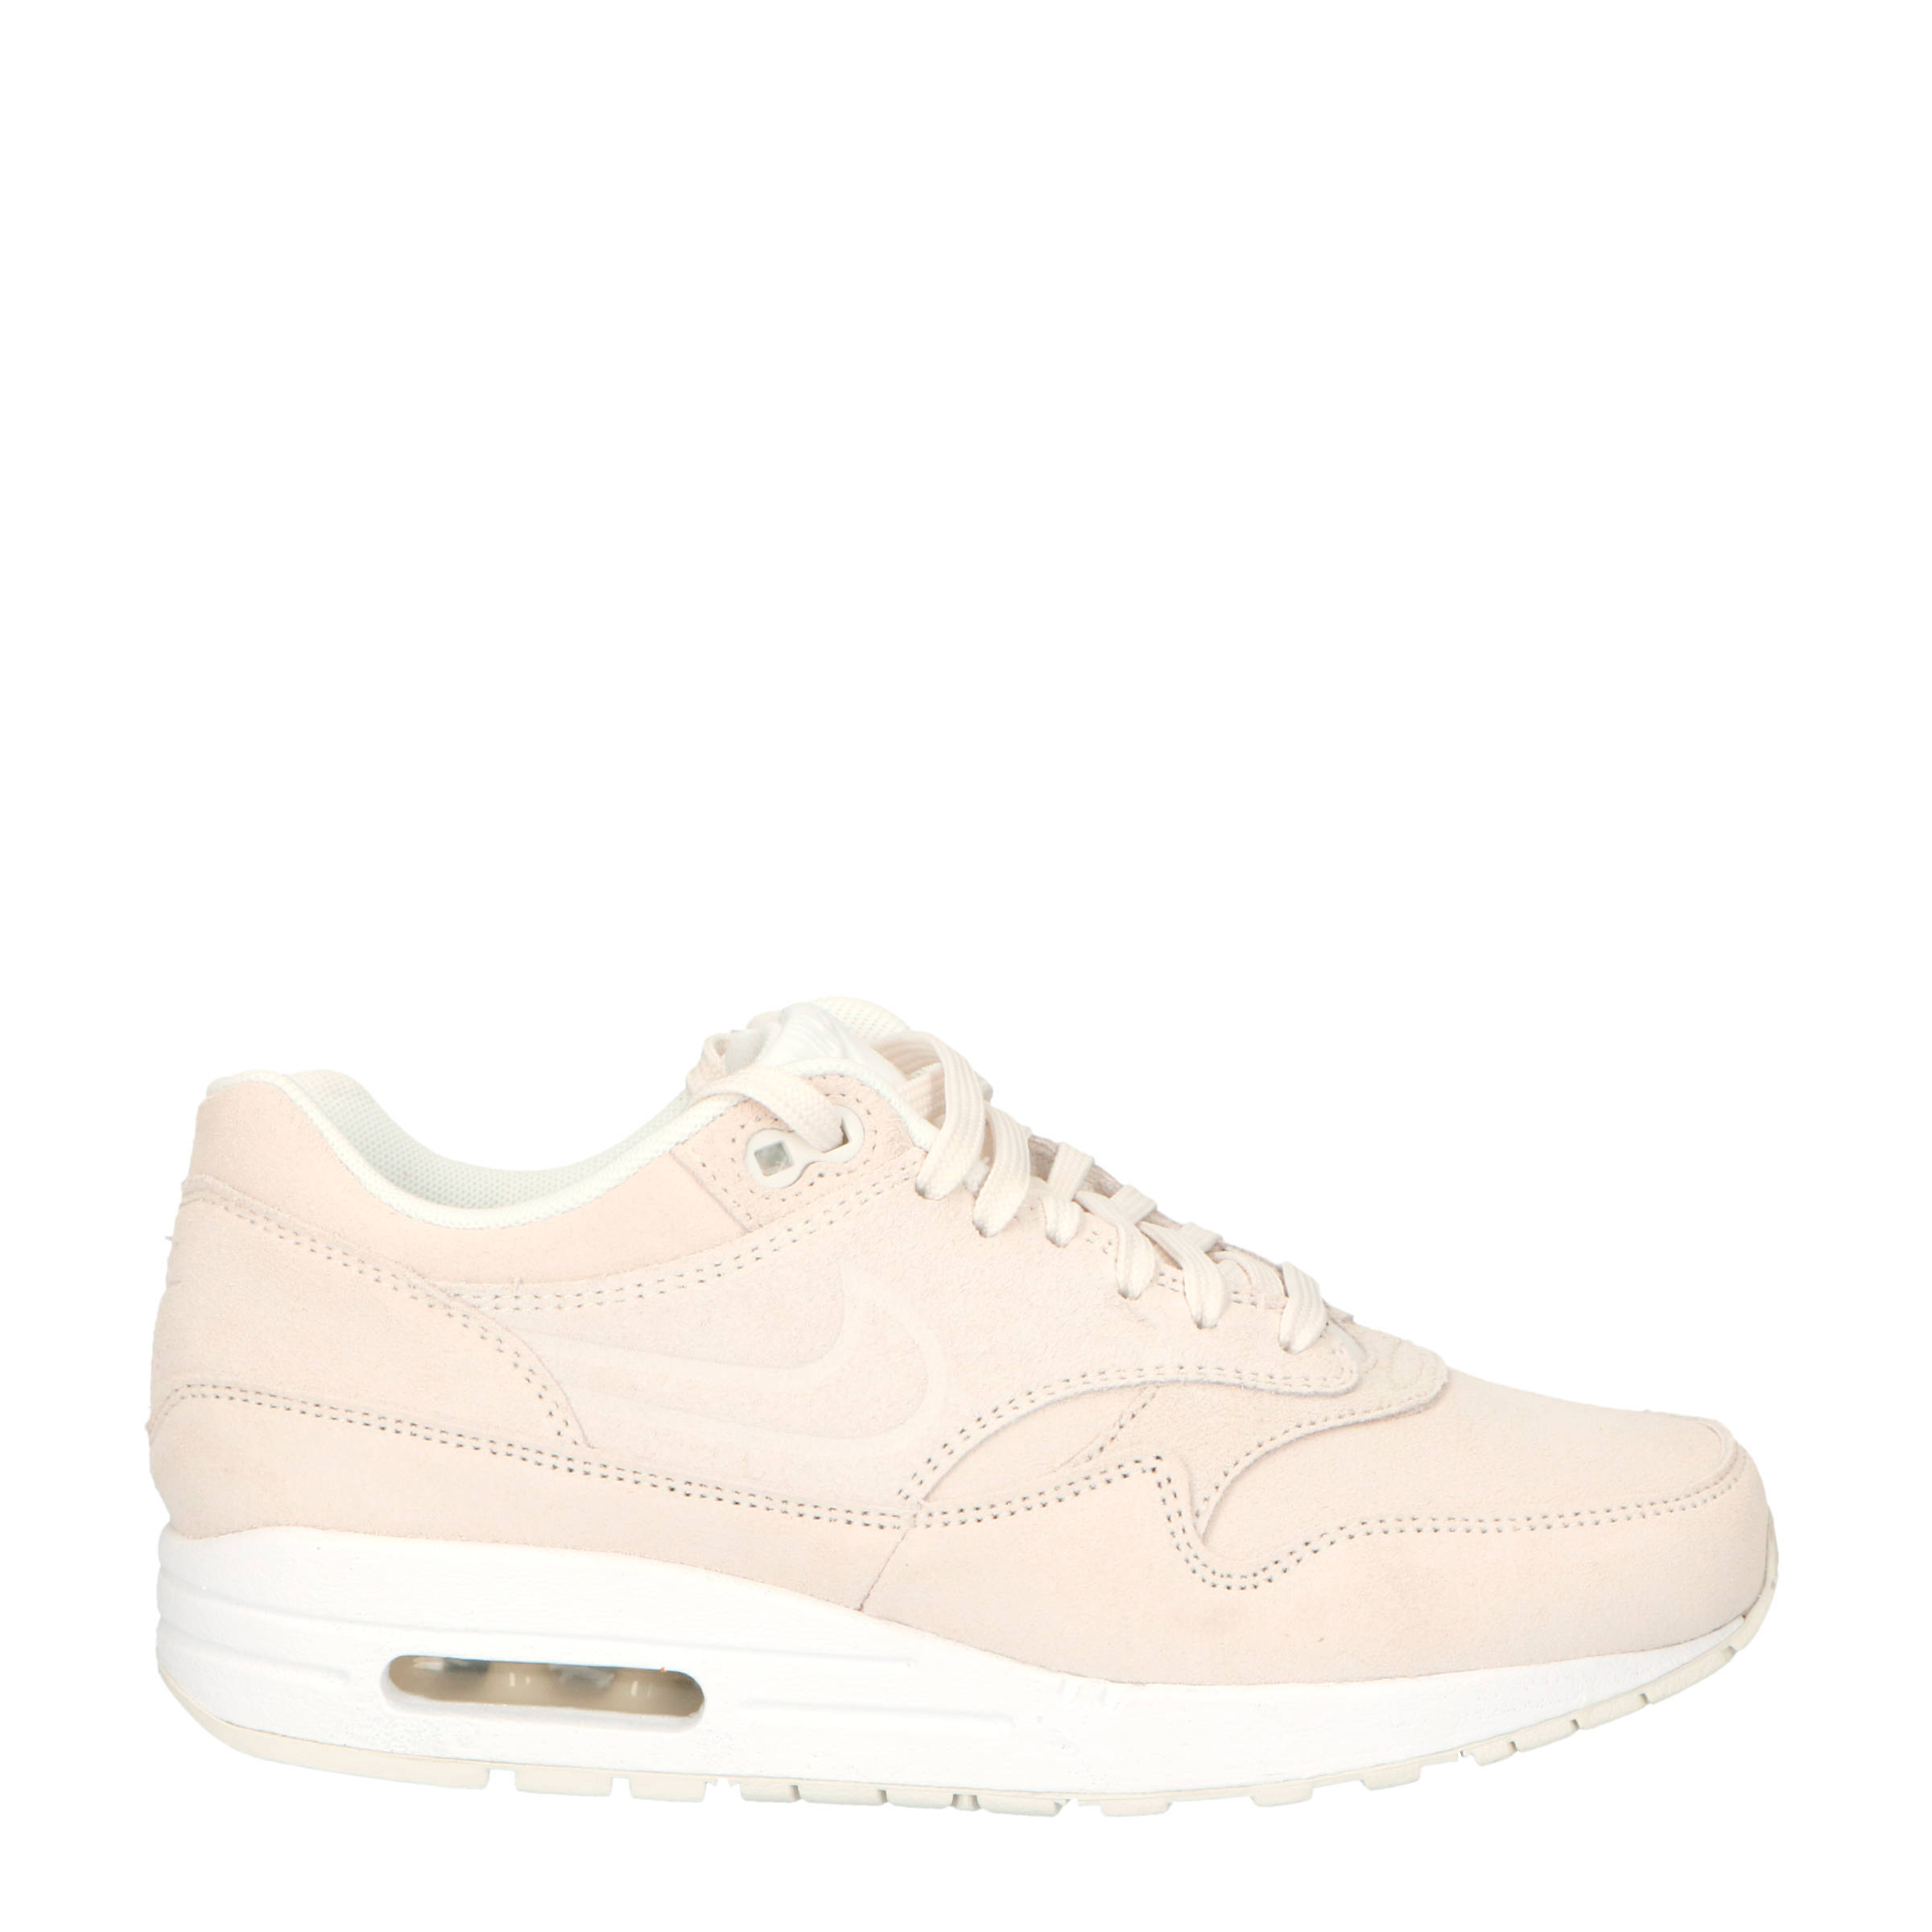 nike air max 1 dames suede